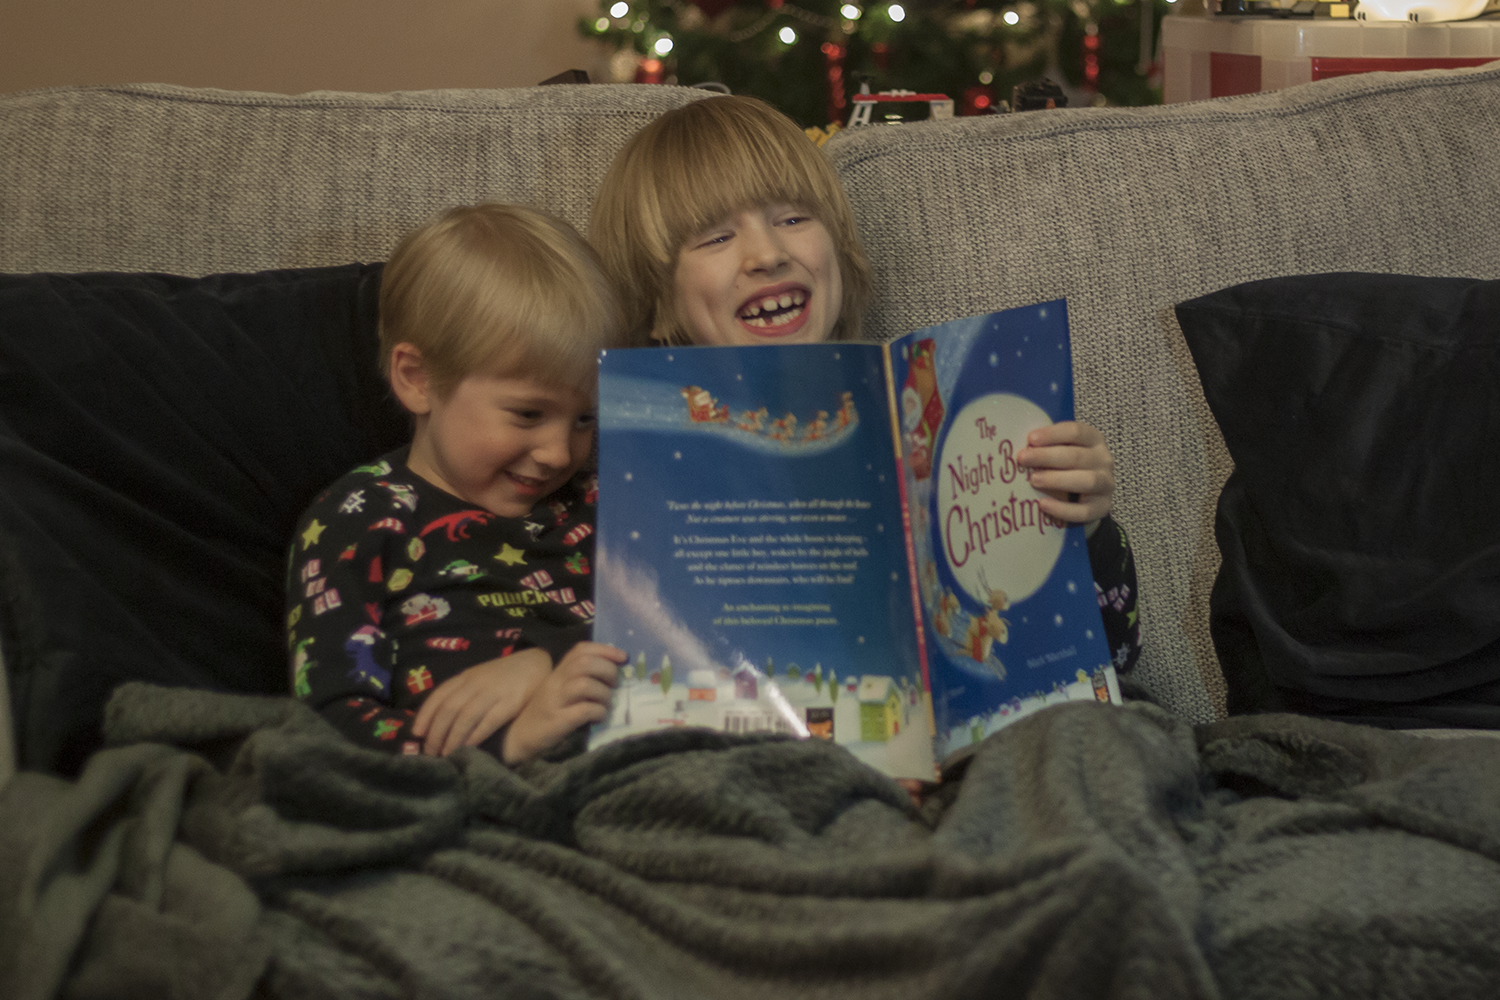 Two boys sitting on a sofa reading The Night Before Christmas